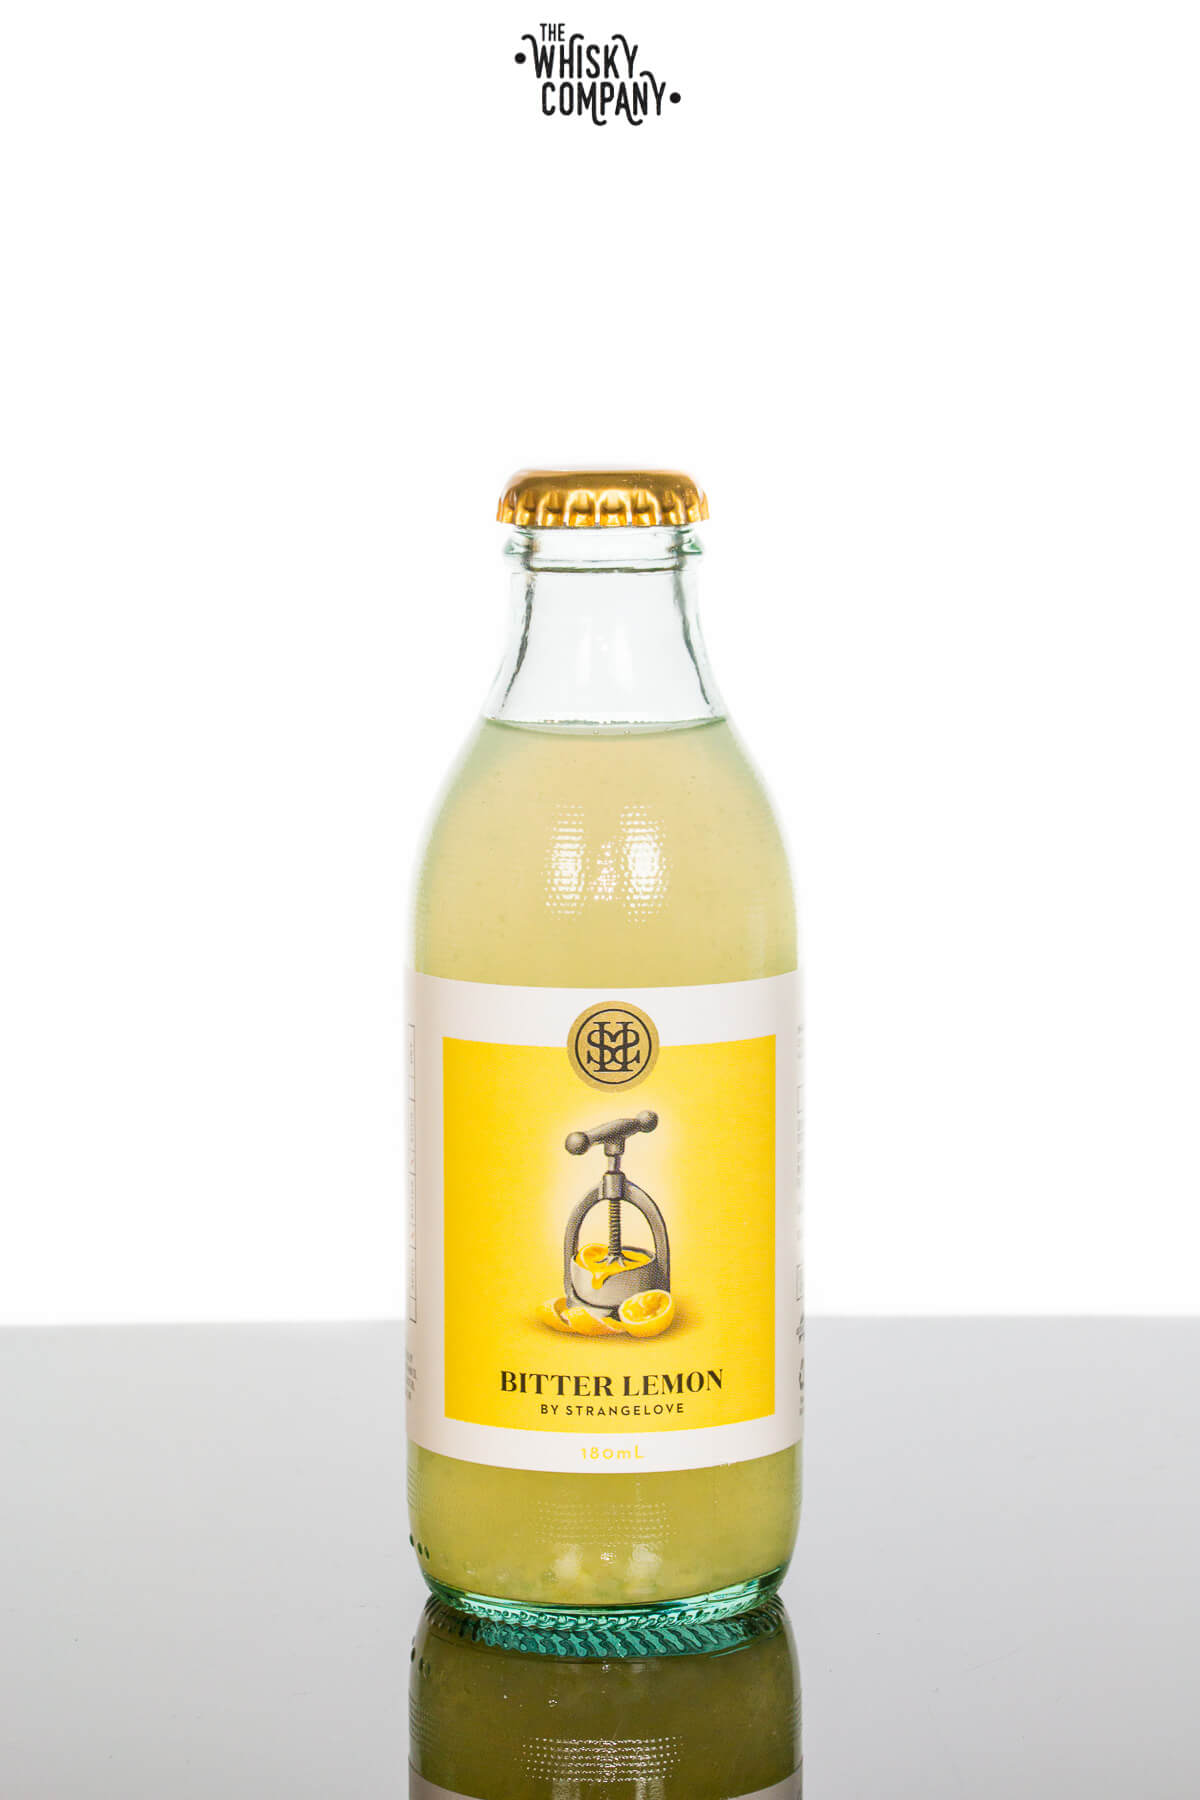 StrangeLove Bitter Lemon Tonic Water (180ml)